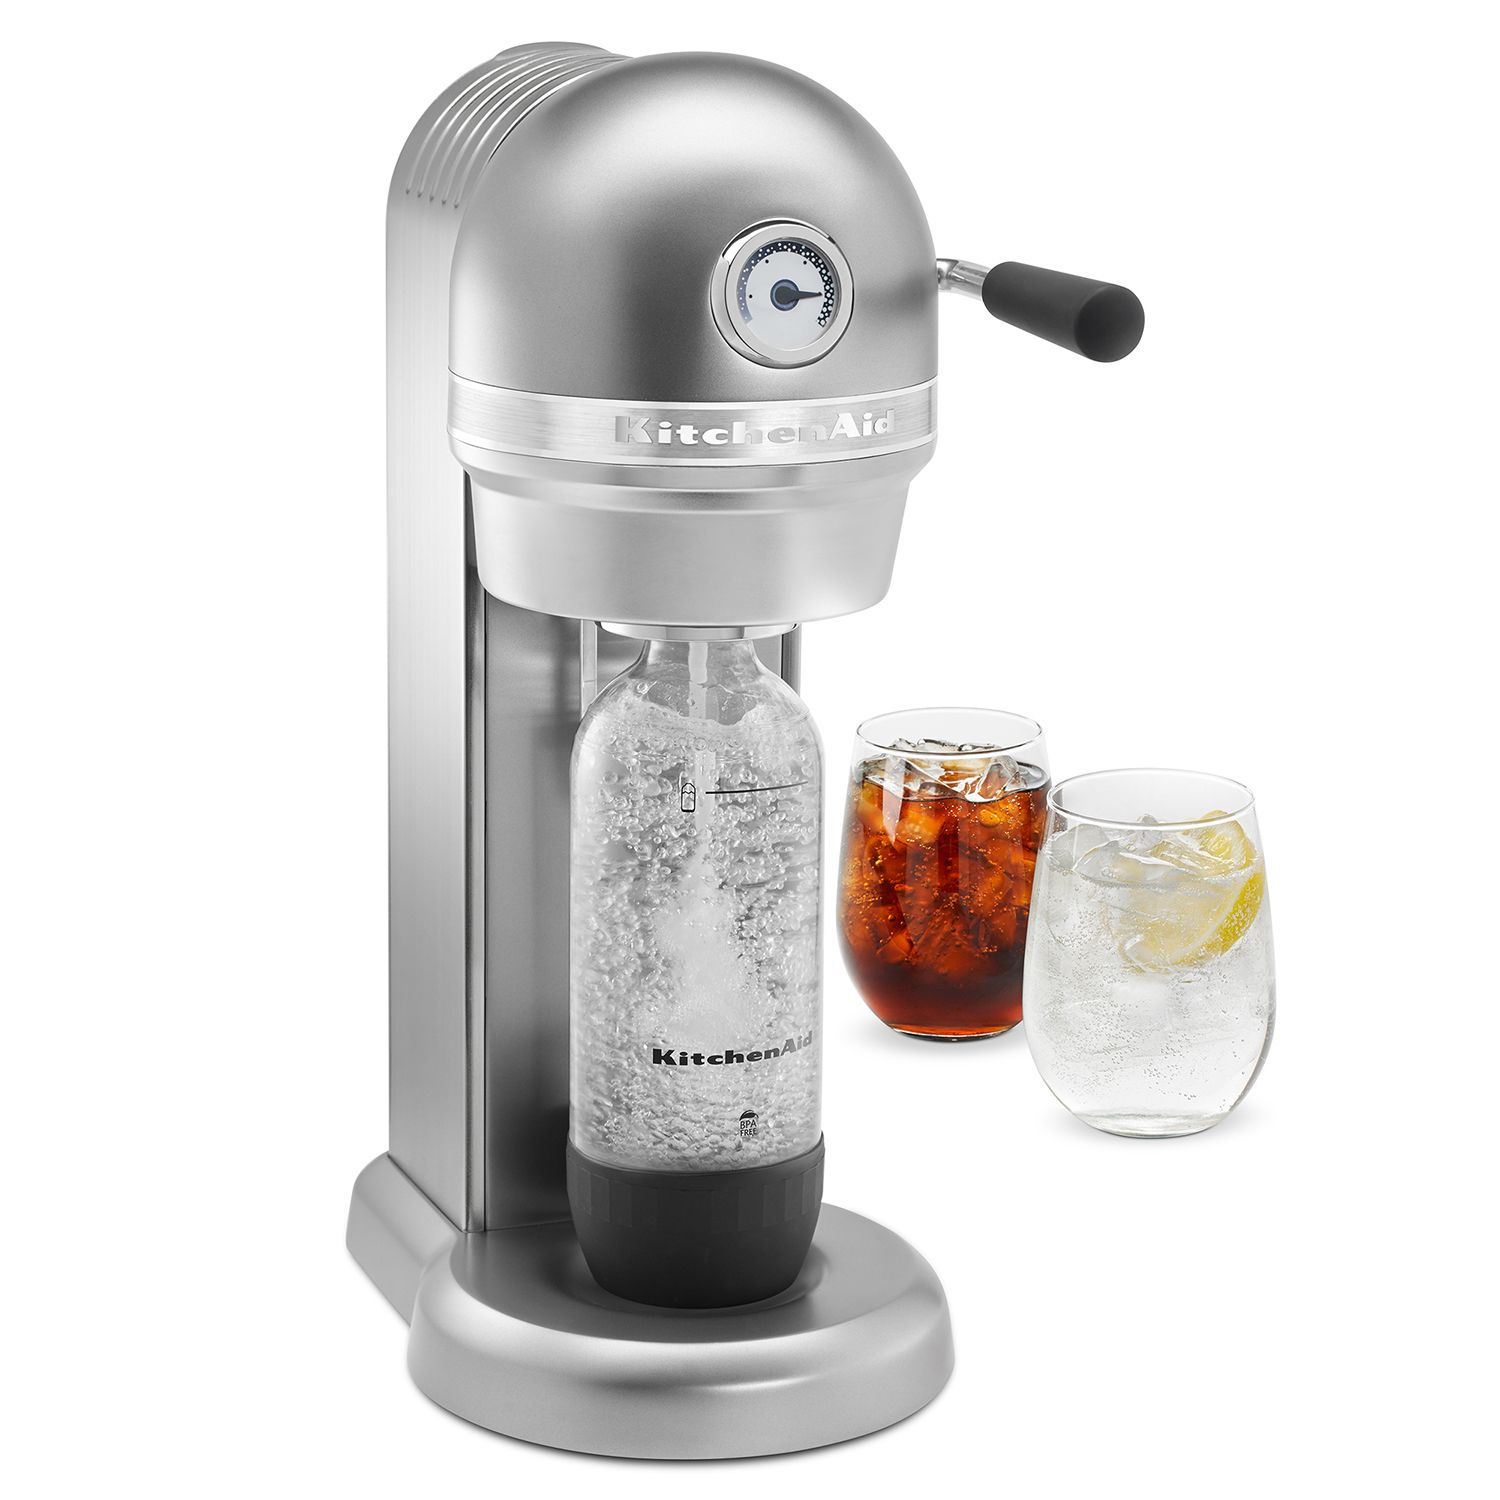 kitchenaid kss1121 sparkling beverage maker powered by sodastream soda maker - Soda Maker